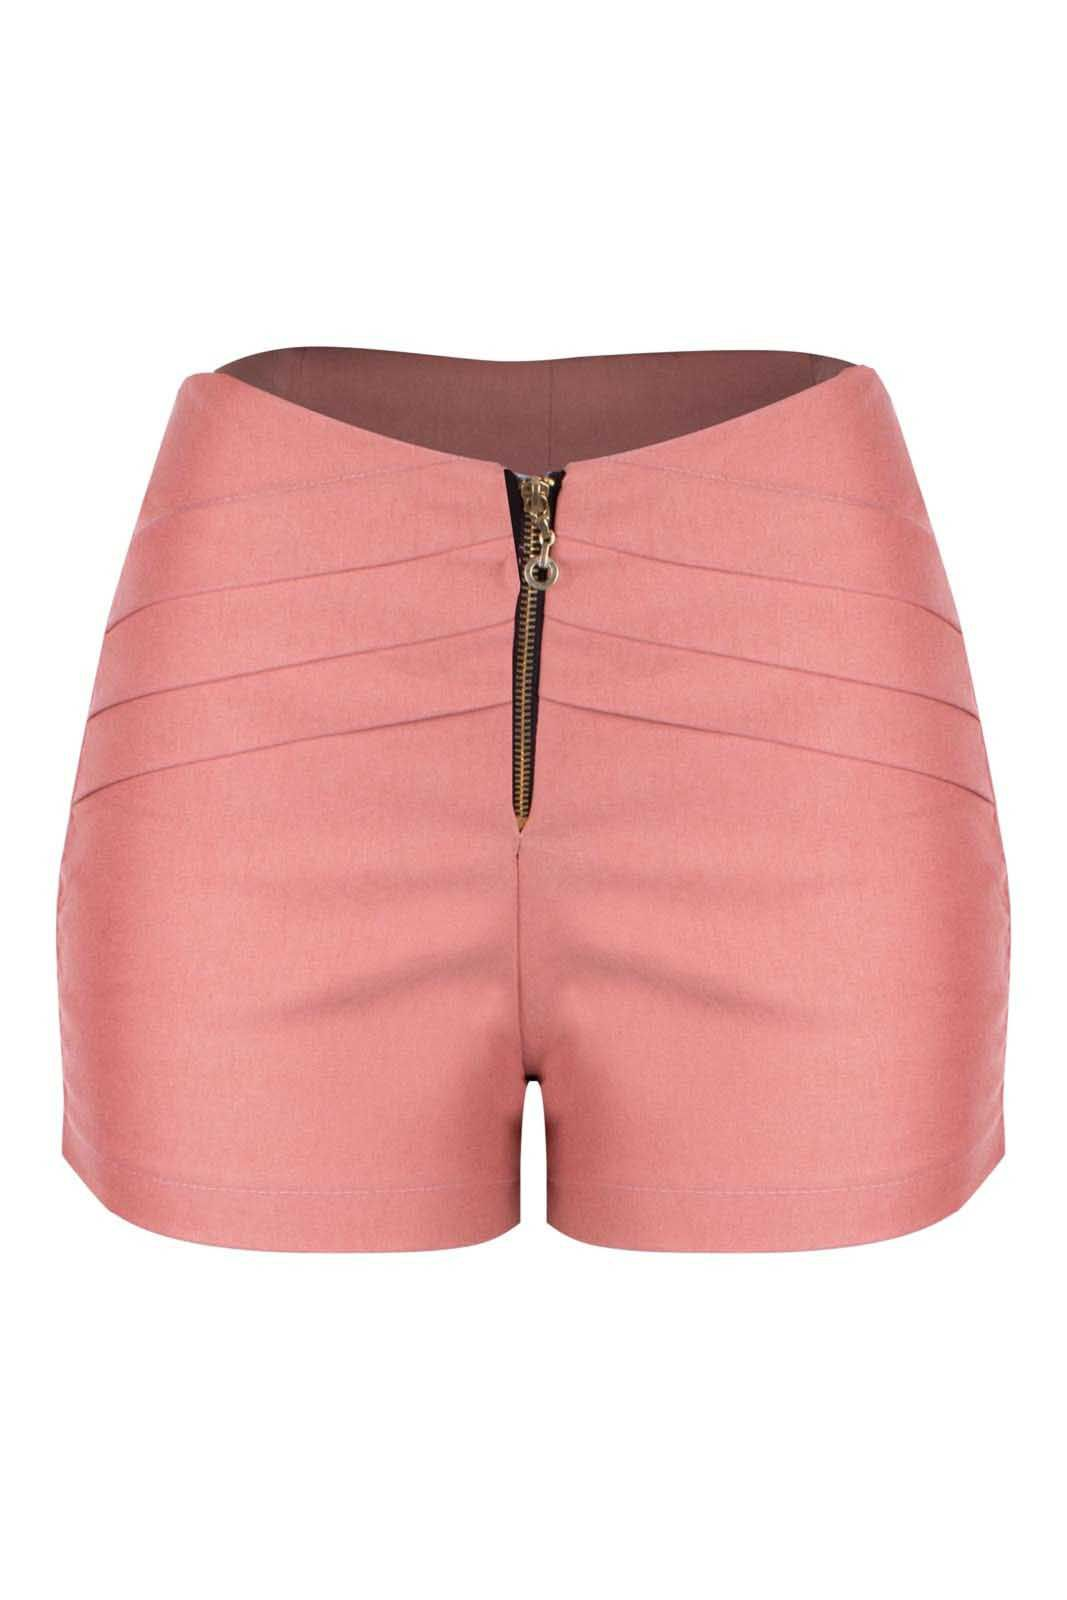 Short Outlet Dri Bengaline Casual Curto Drappeada Lateral Zíper Rosê